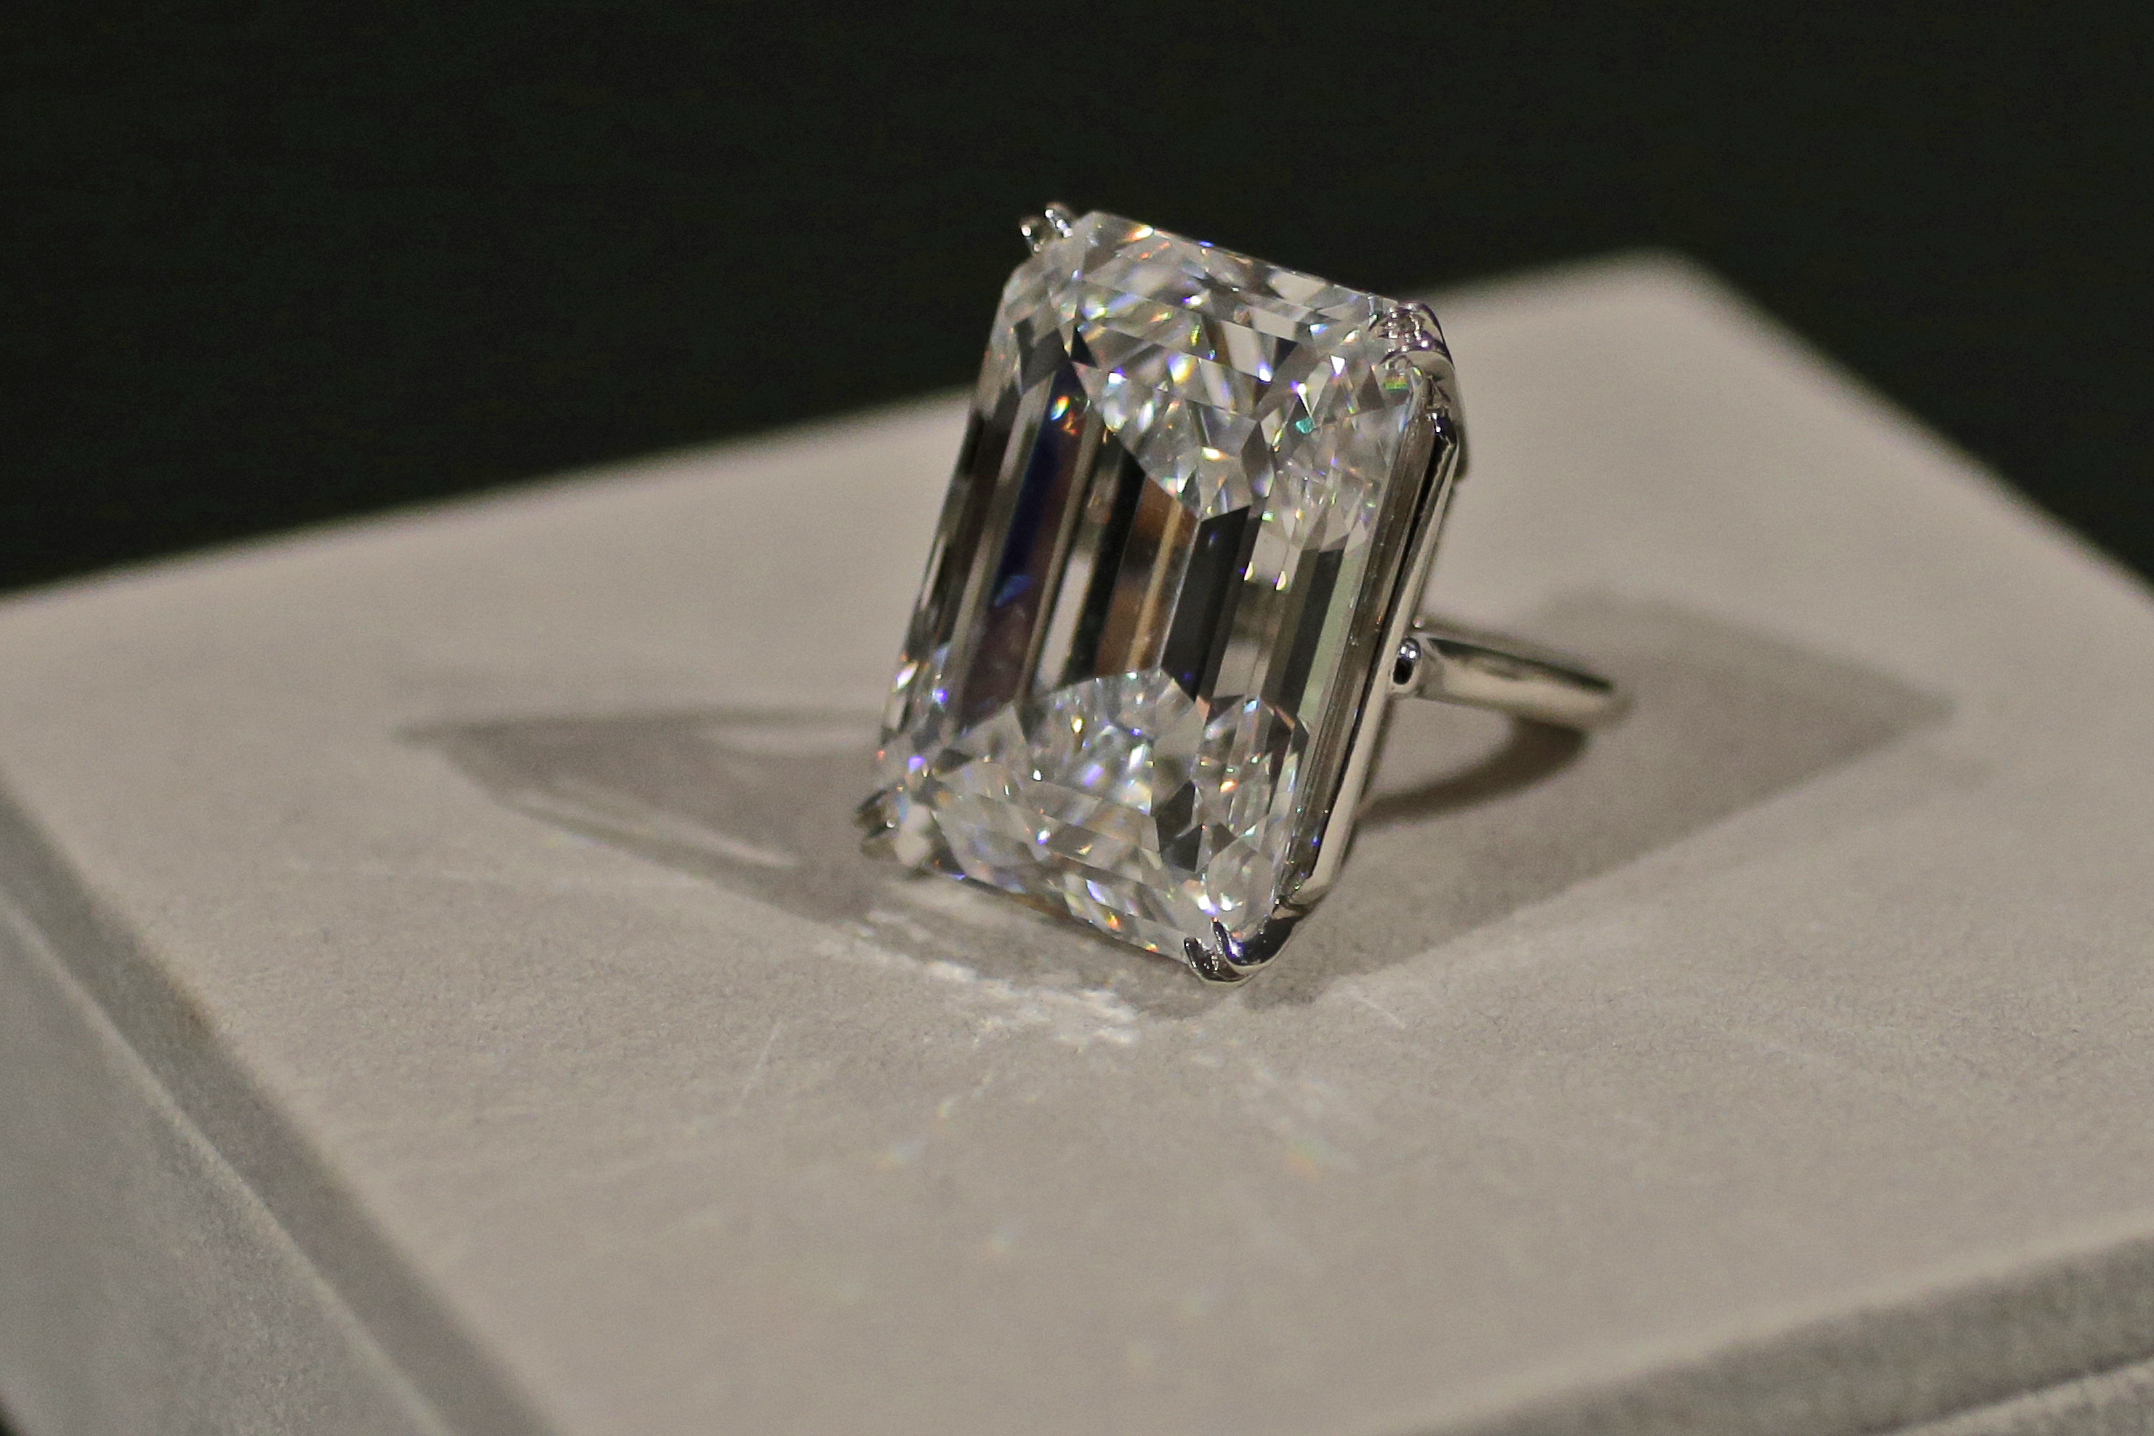 100-carat diamond could bring $25M at auction